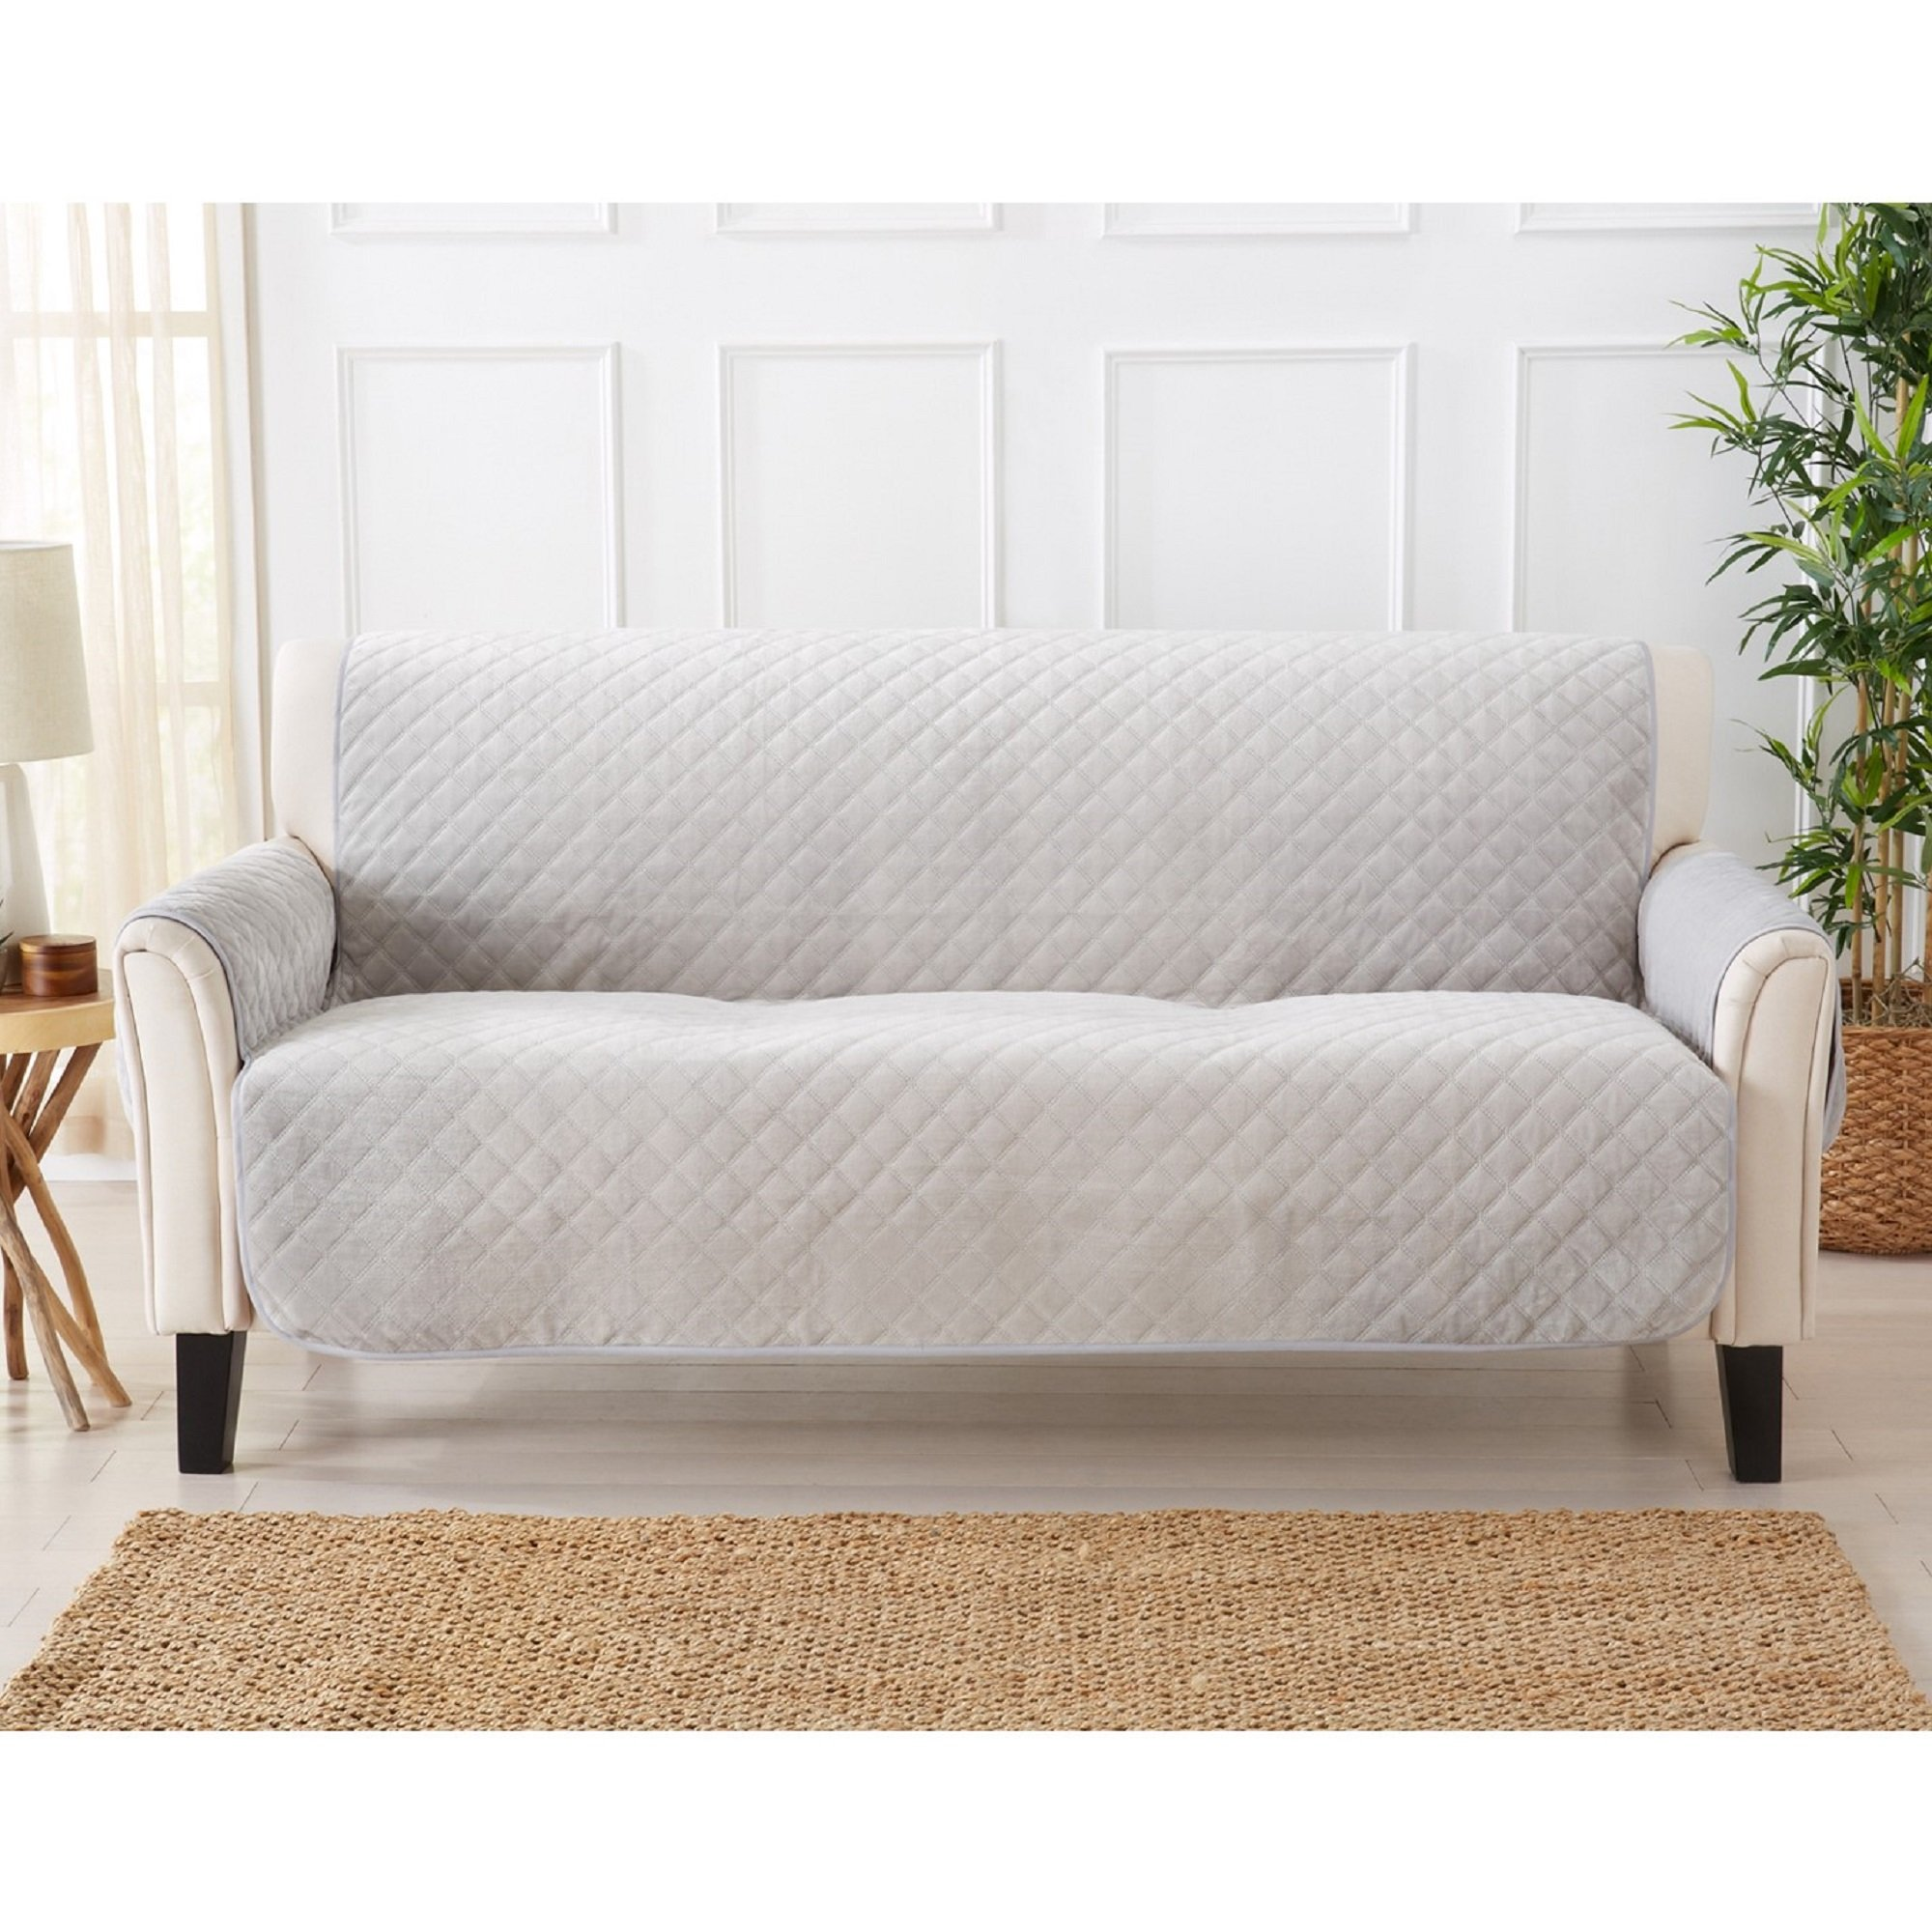 Modern Velvet Furniture Protector. Stain Resistant, Durable, Machine Washable. Perfect for Pets, Dogs & Kids (Sofa, Grey)